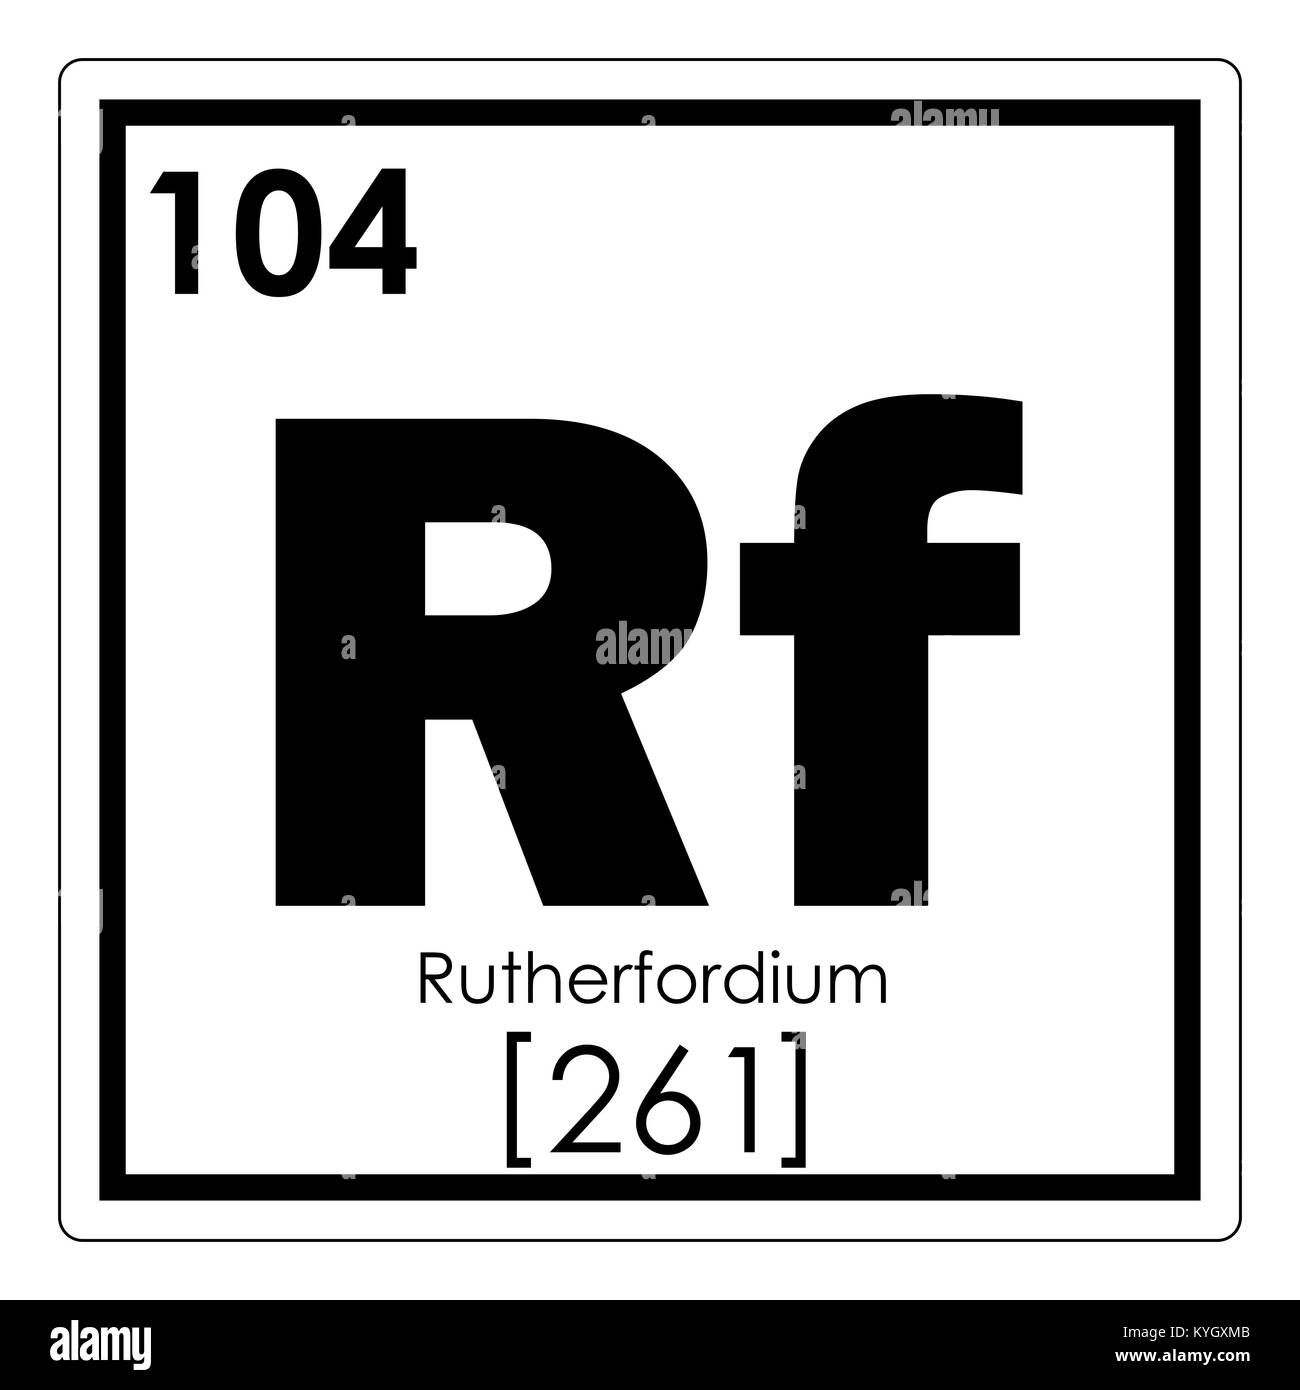 Rutherfordium chemical element periodic table science symbol Stock Photo